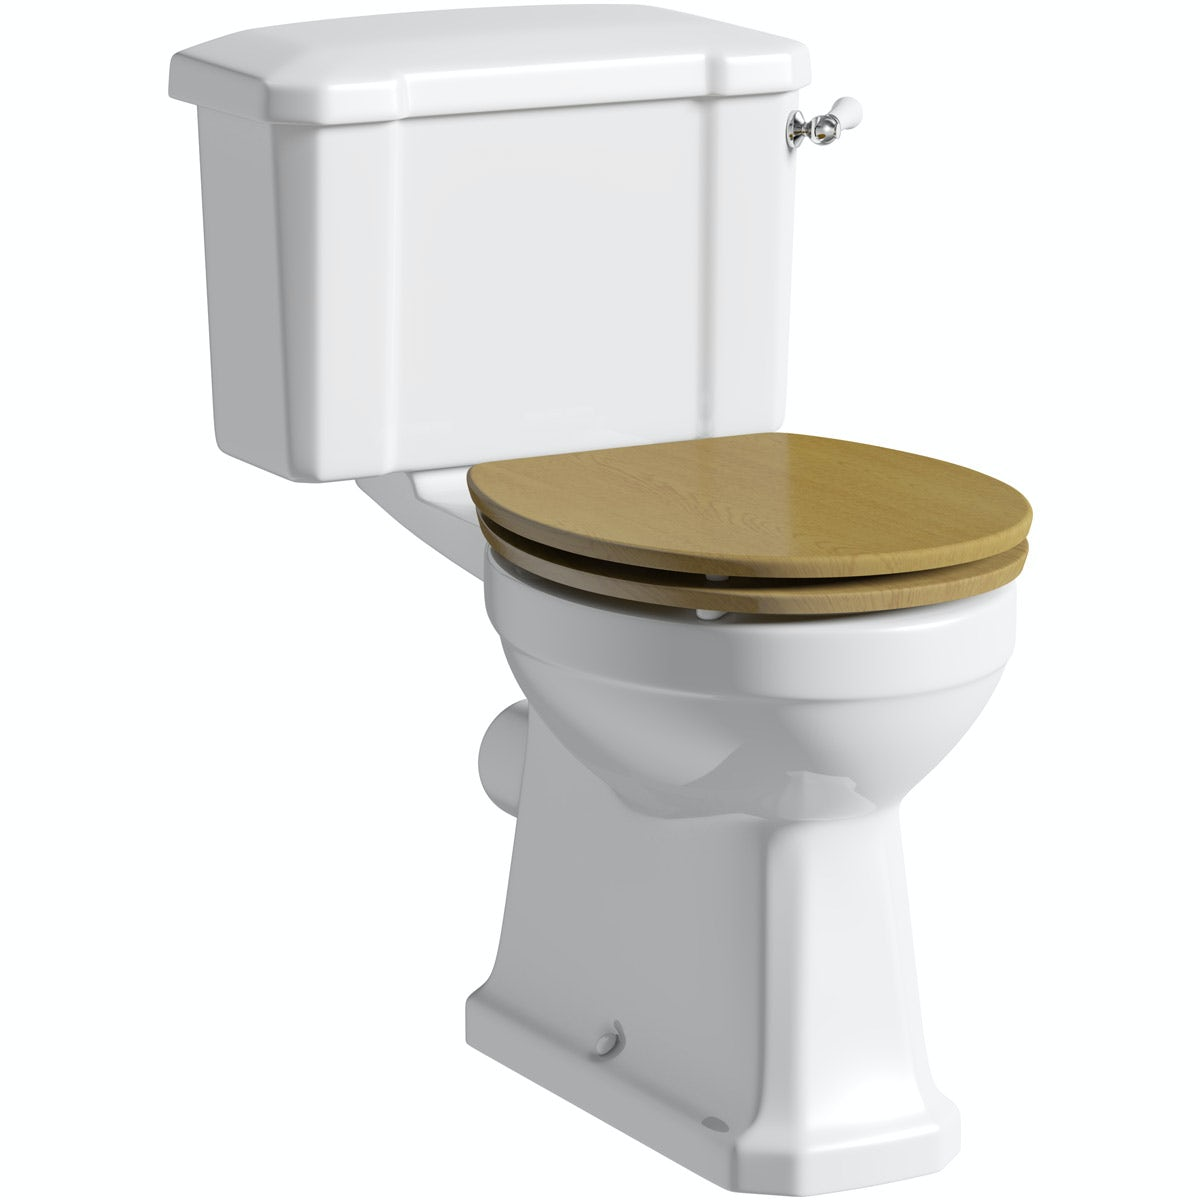 The Bath Co. Camberley close coupled toilet with wooden soft close seat oak effect with pan connector